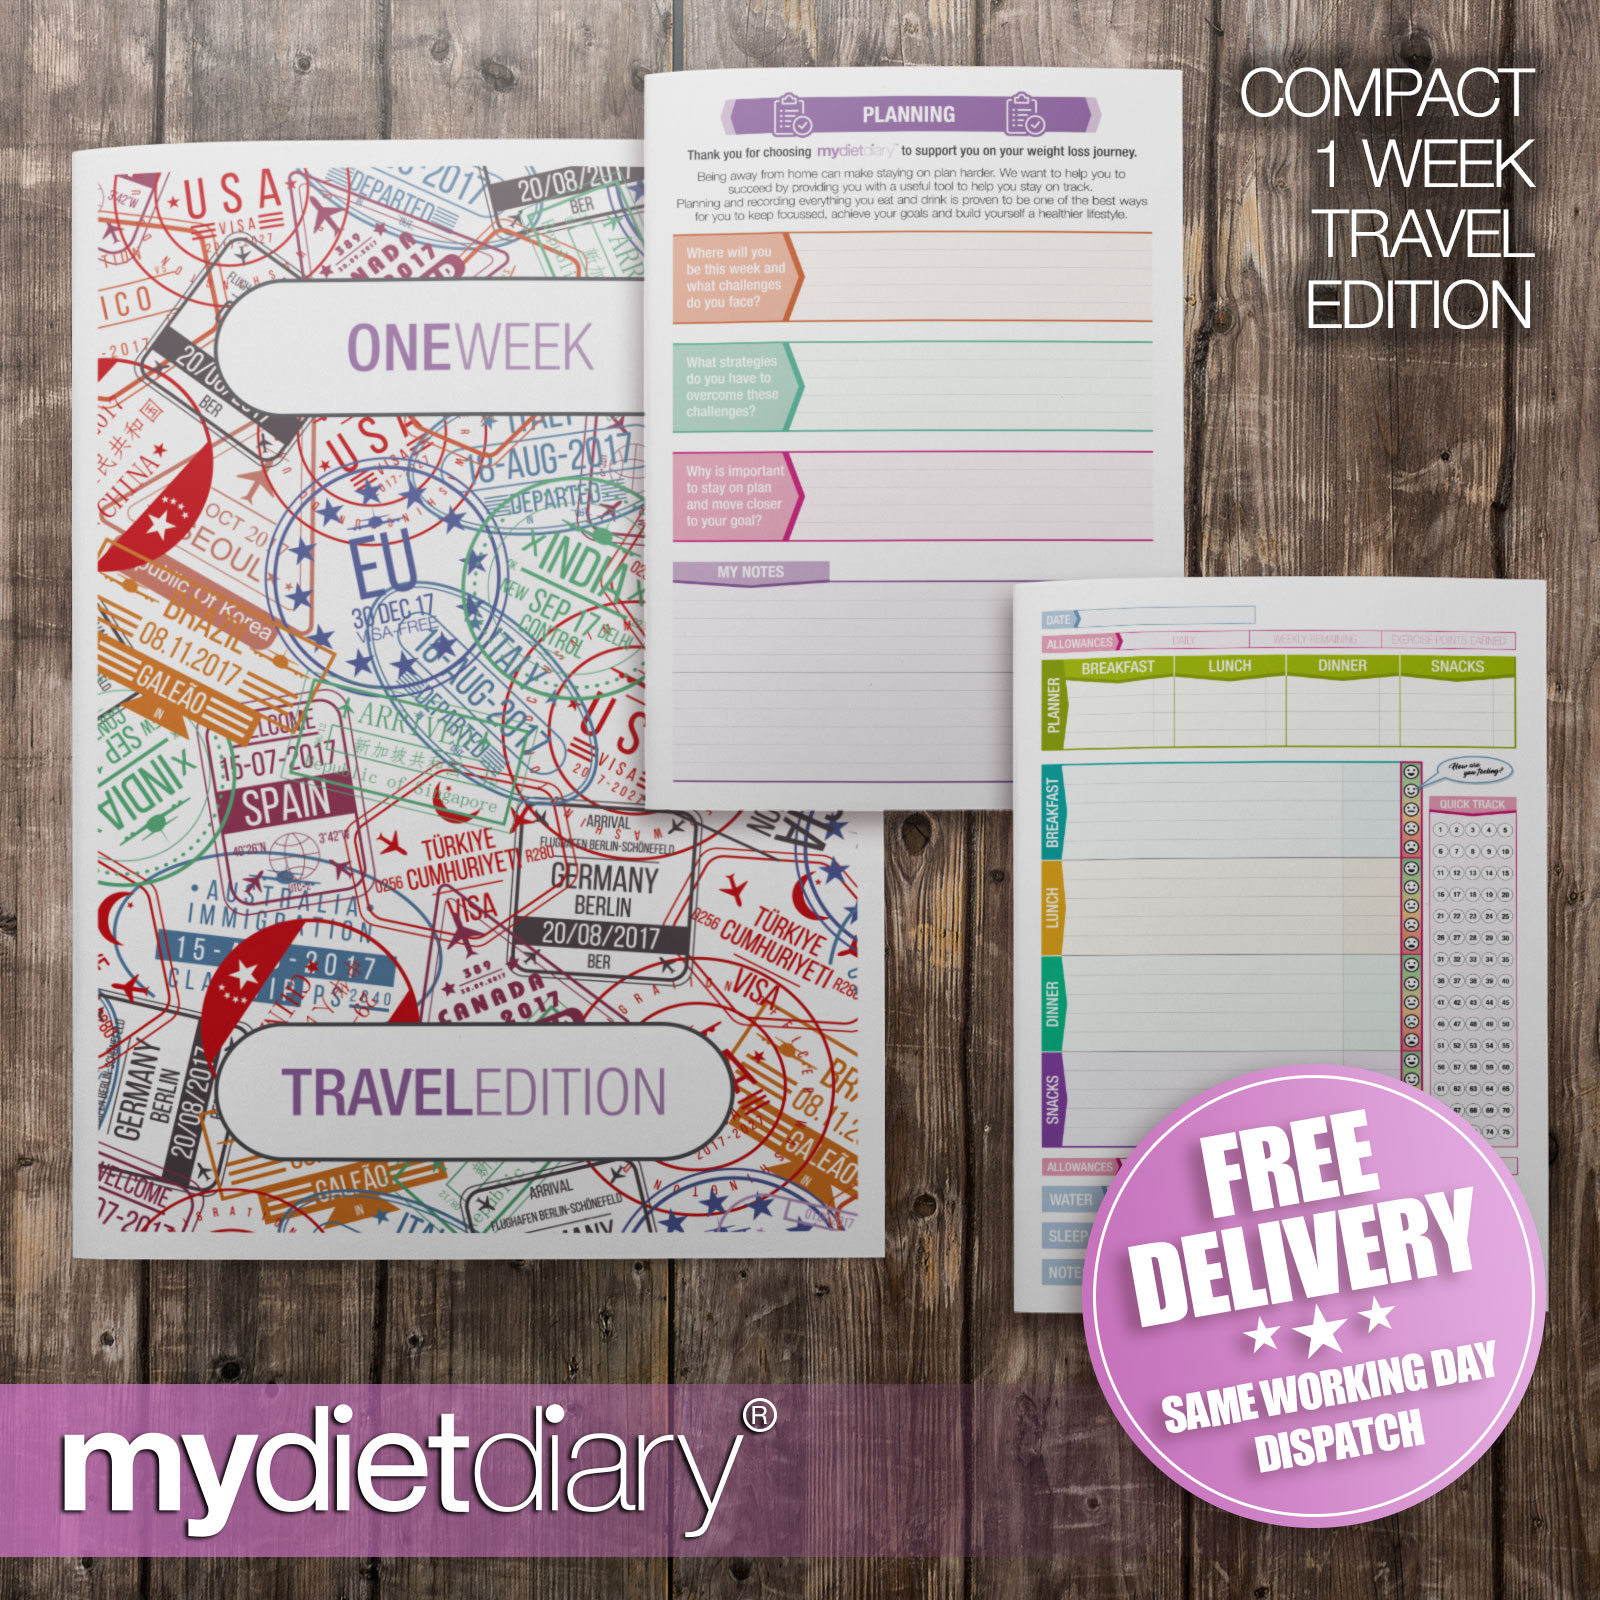 WEIGHT-WATCHERS-COMPATIBLE-DIARY-All-About-Cakes-W023W-12wk-diet-weight-loss